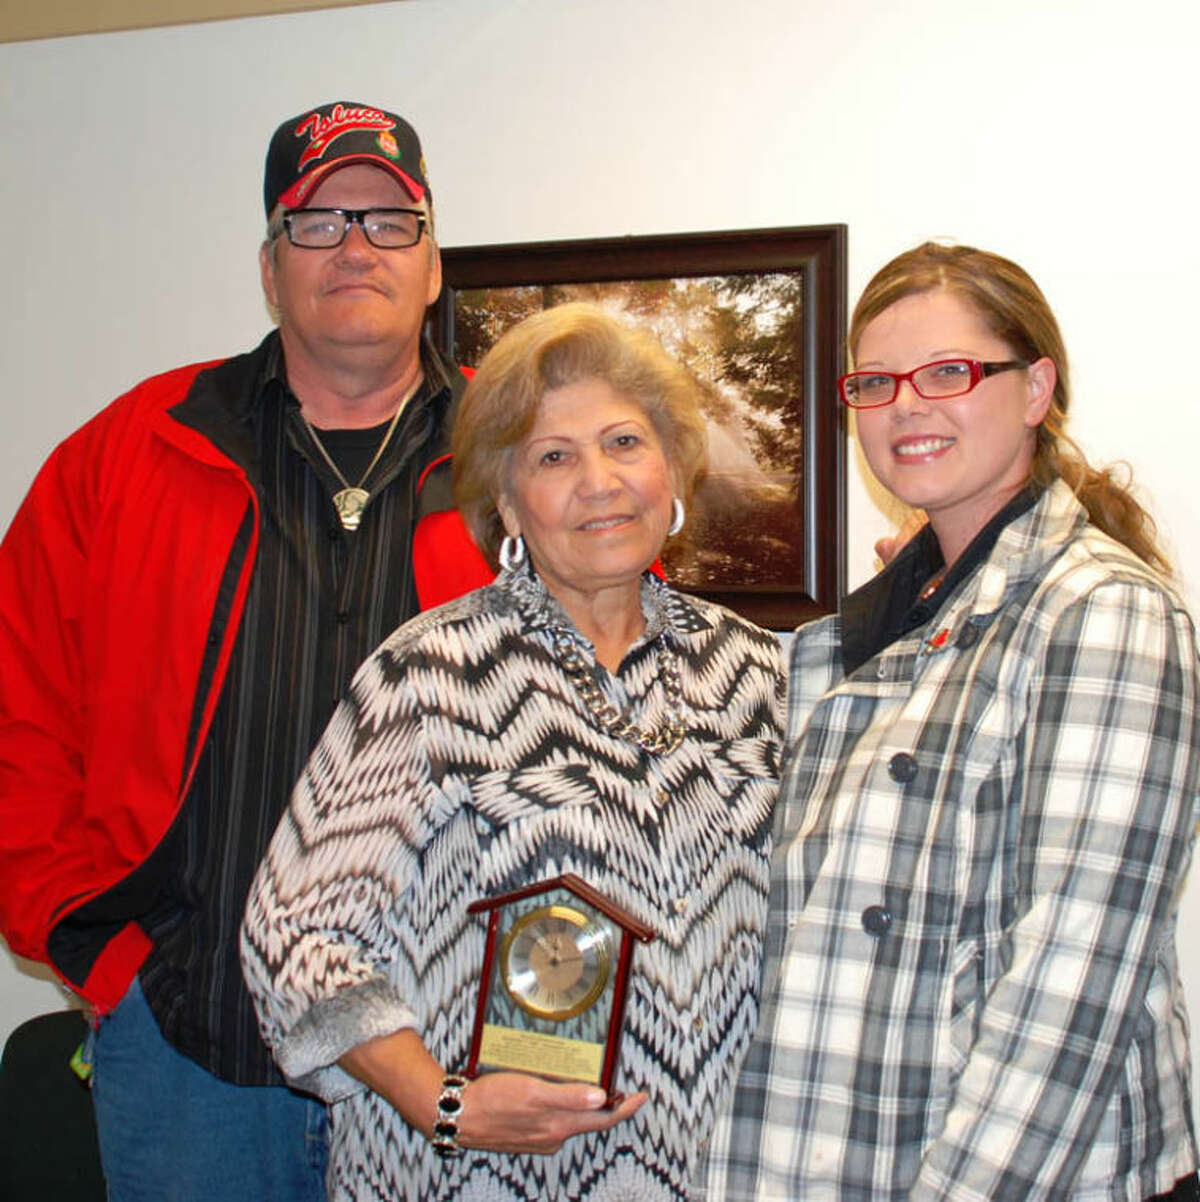 Photo providedGail and Rachel Locke, who serve as foster parents for the Midland County Probate Court, pose with an award they received for their years of service and Kelly Muscott, one of the kids they fostered. Muscott is in the process of becoming licensed to foster.